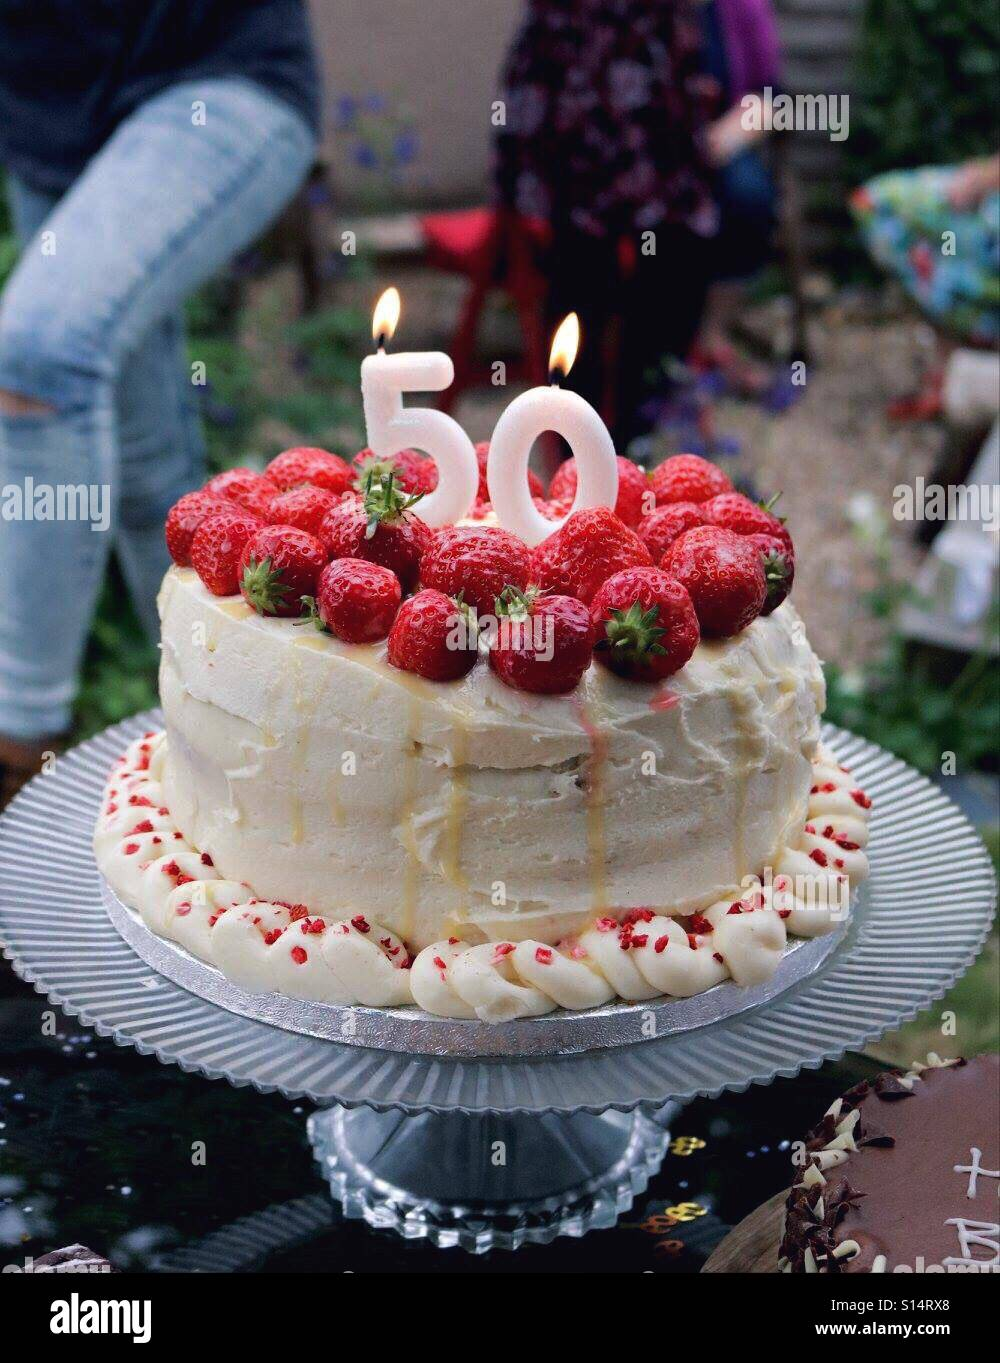 50th Birthday Cake Topped With Strawberries And Candles